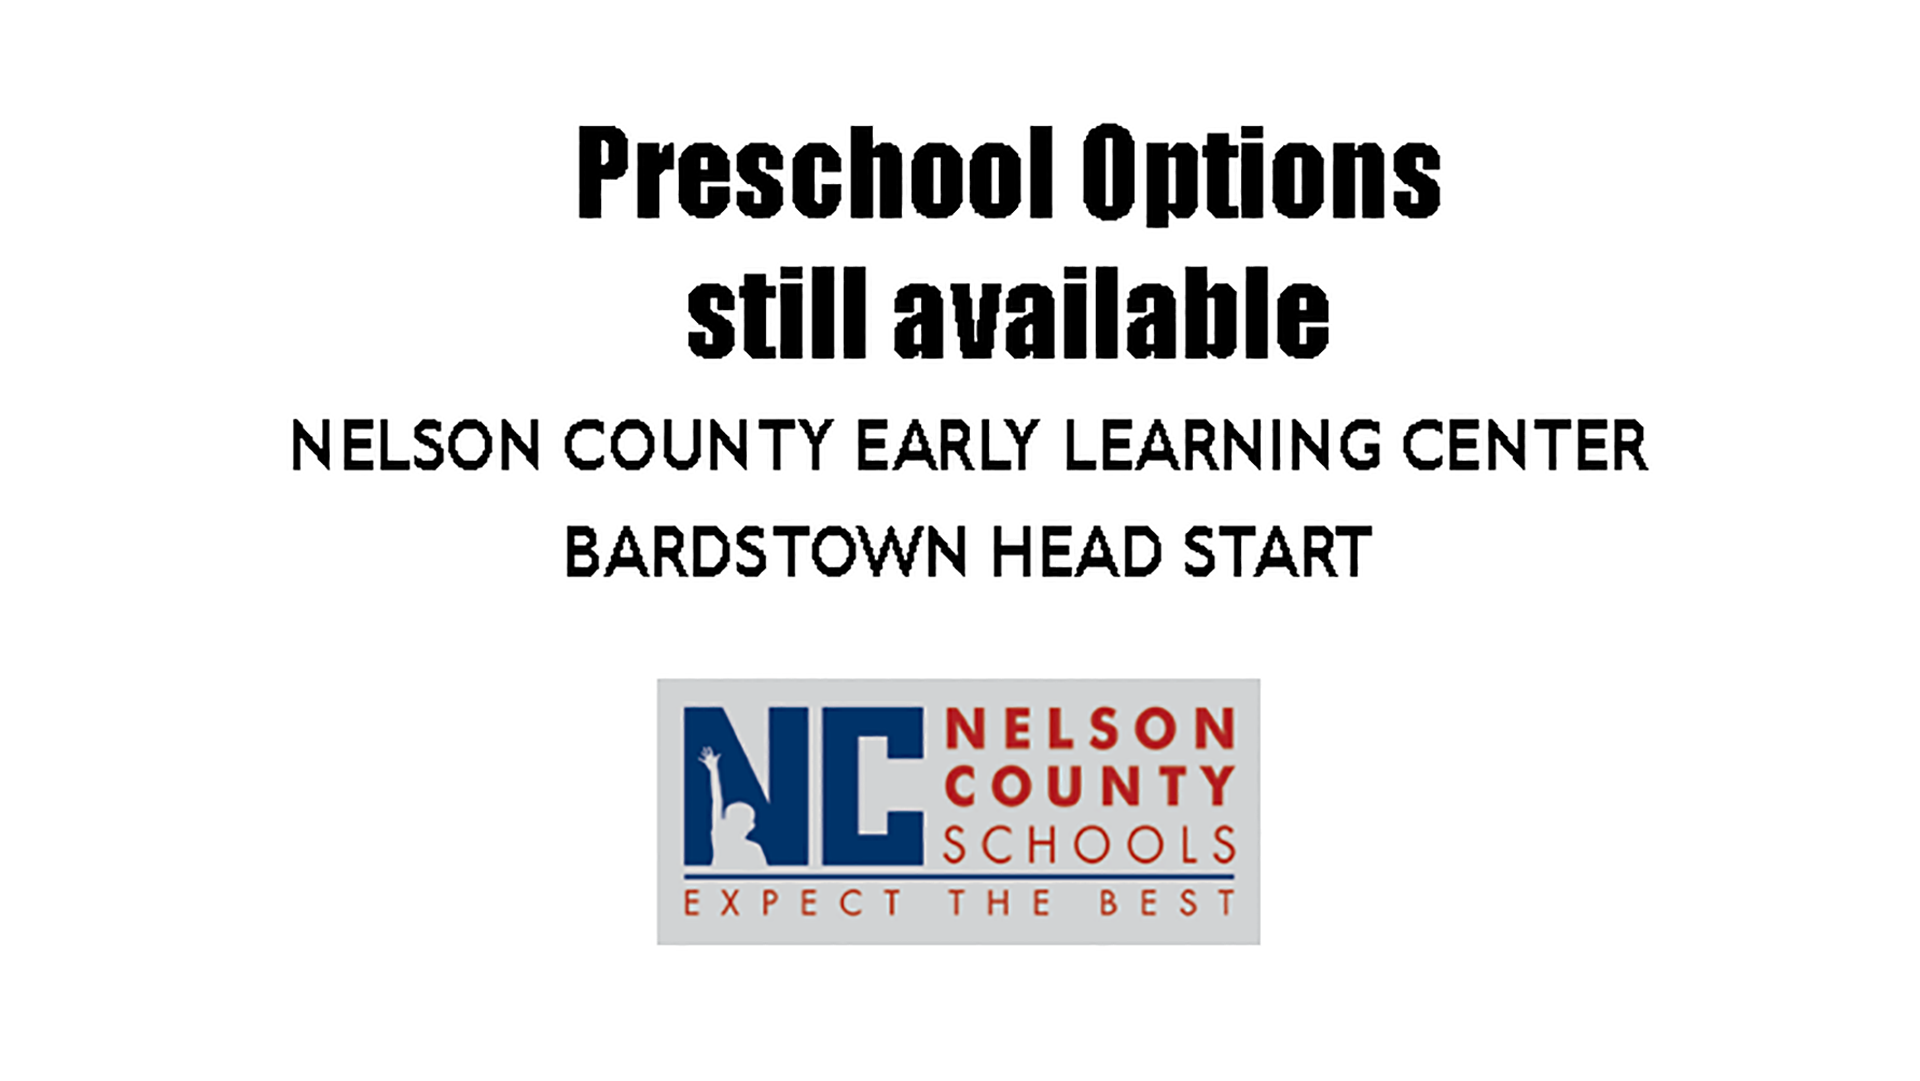 Preschool Options Still Available